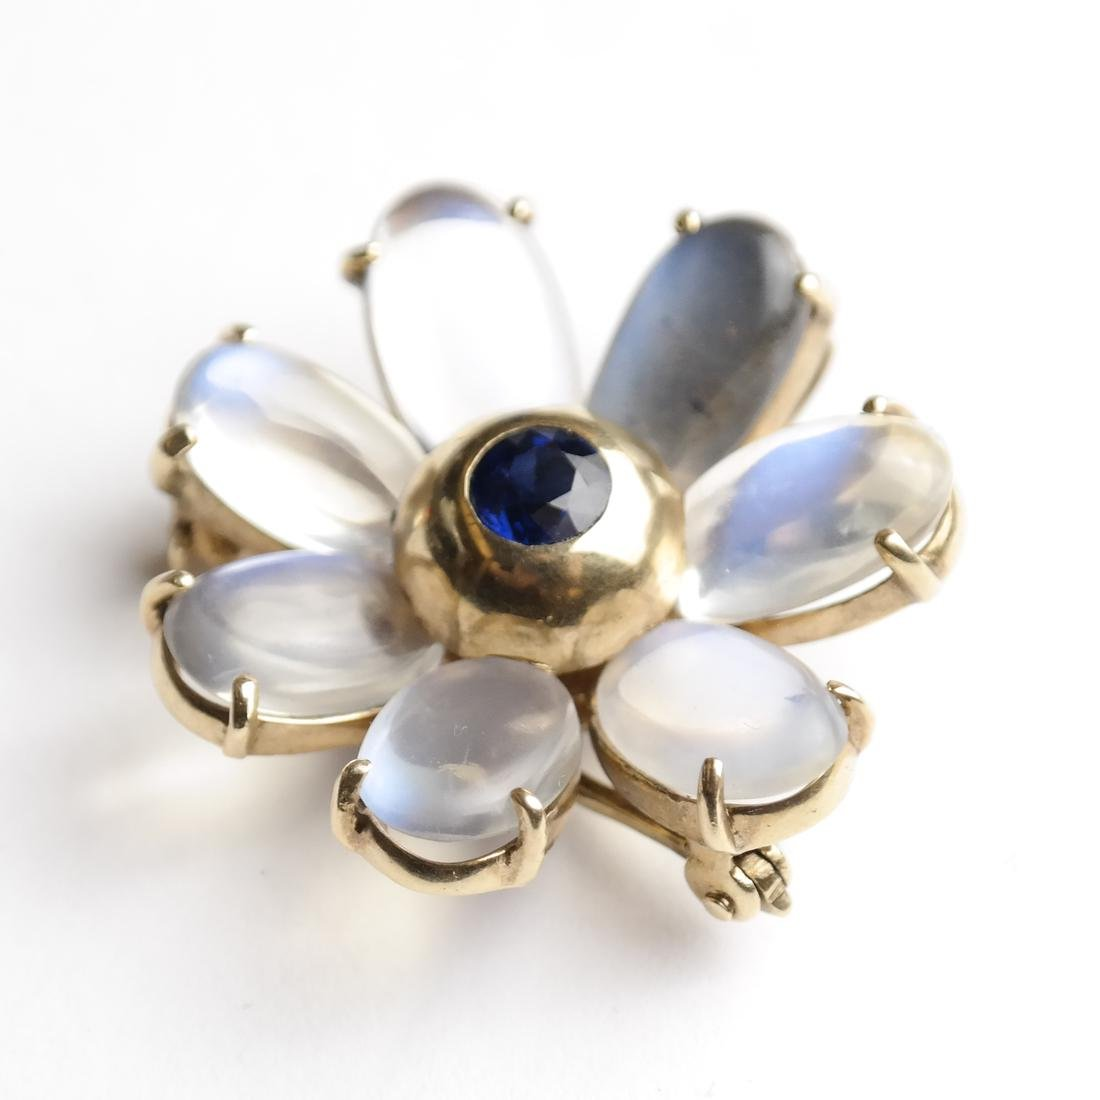 14k Gold Pin With Blue Sapphire - 2